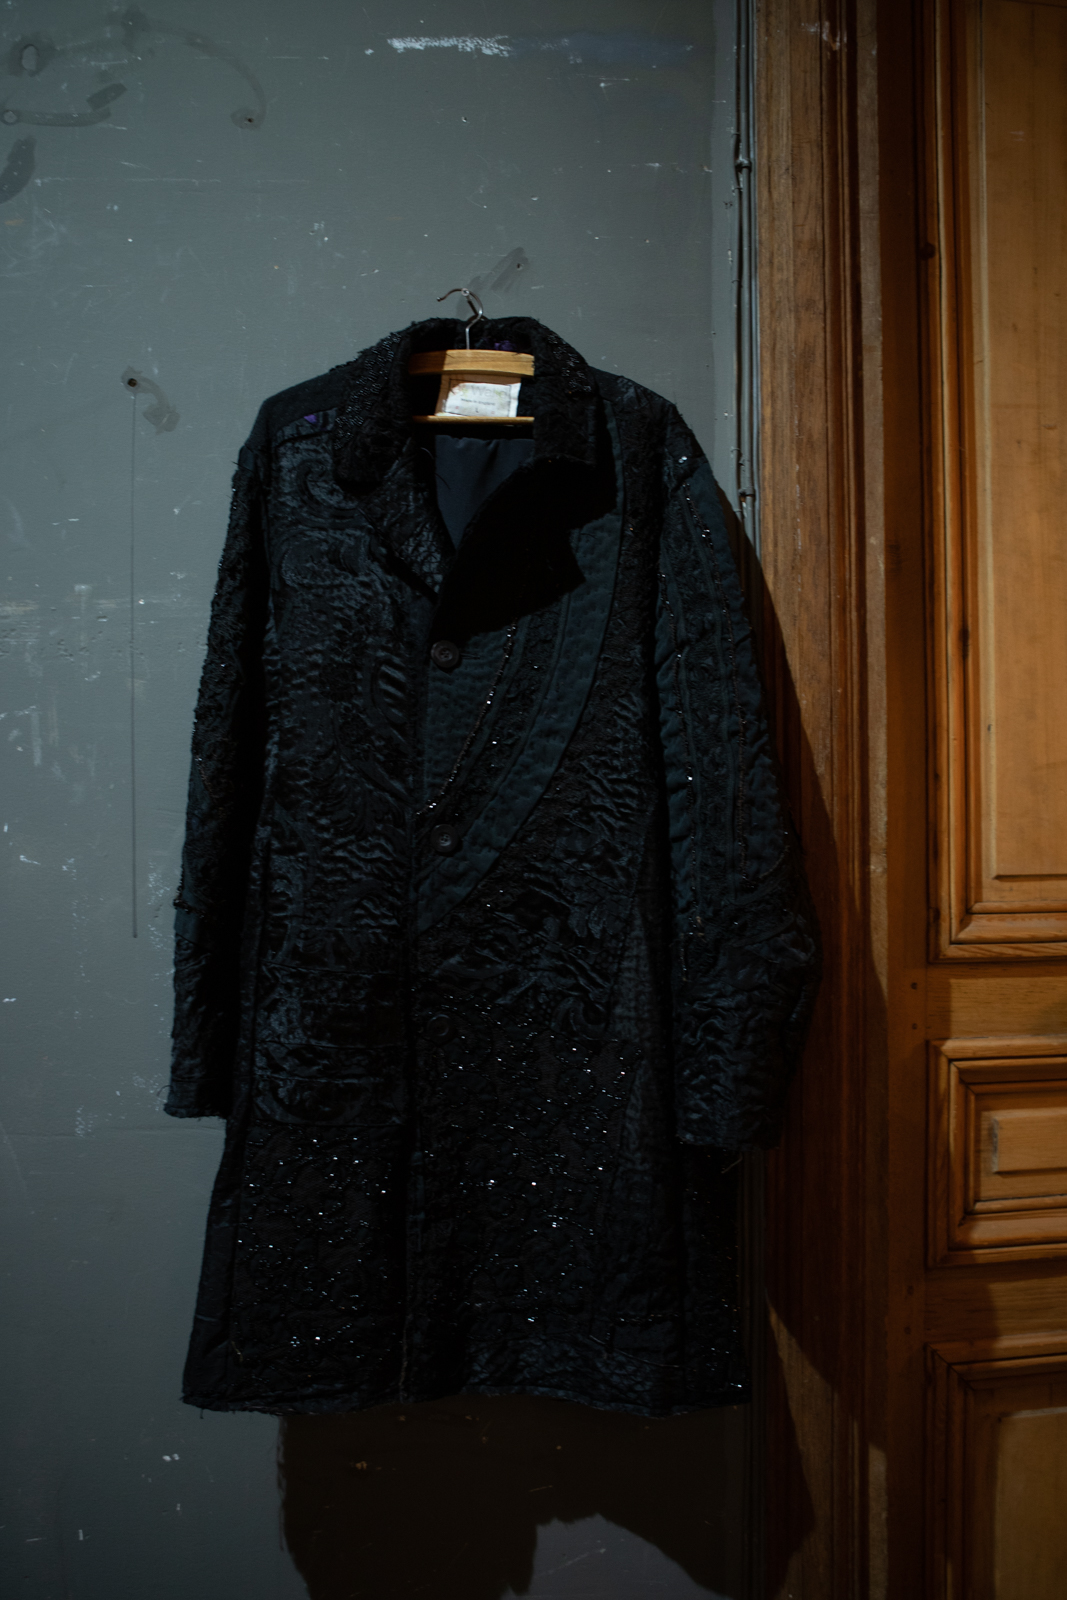 By Walid Embroidered Sequin Coat in Black FW20